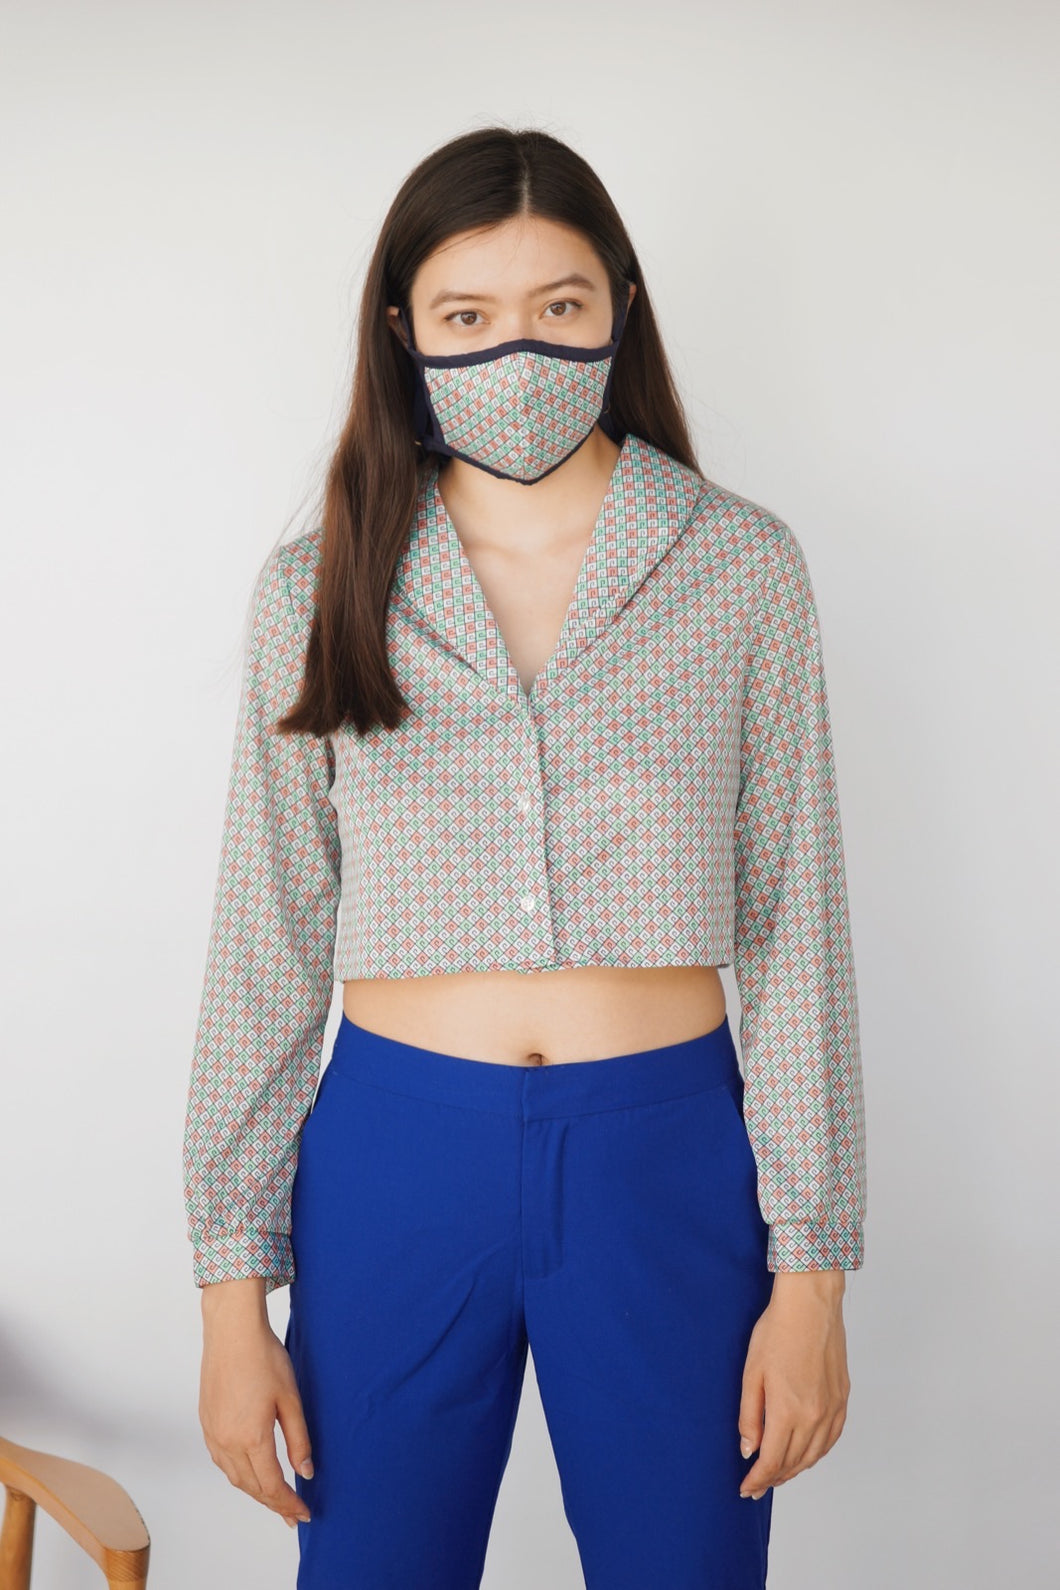 Top + Mask Ensemble - Transformed Top, Cropped and Upcycled - Zero Waste Fashion -